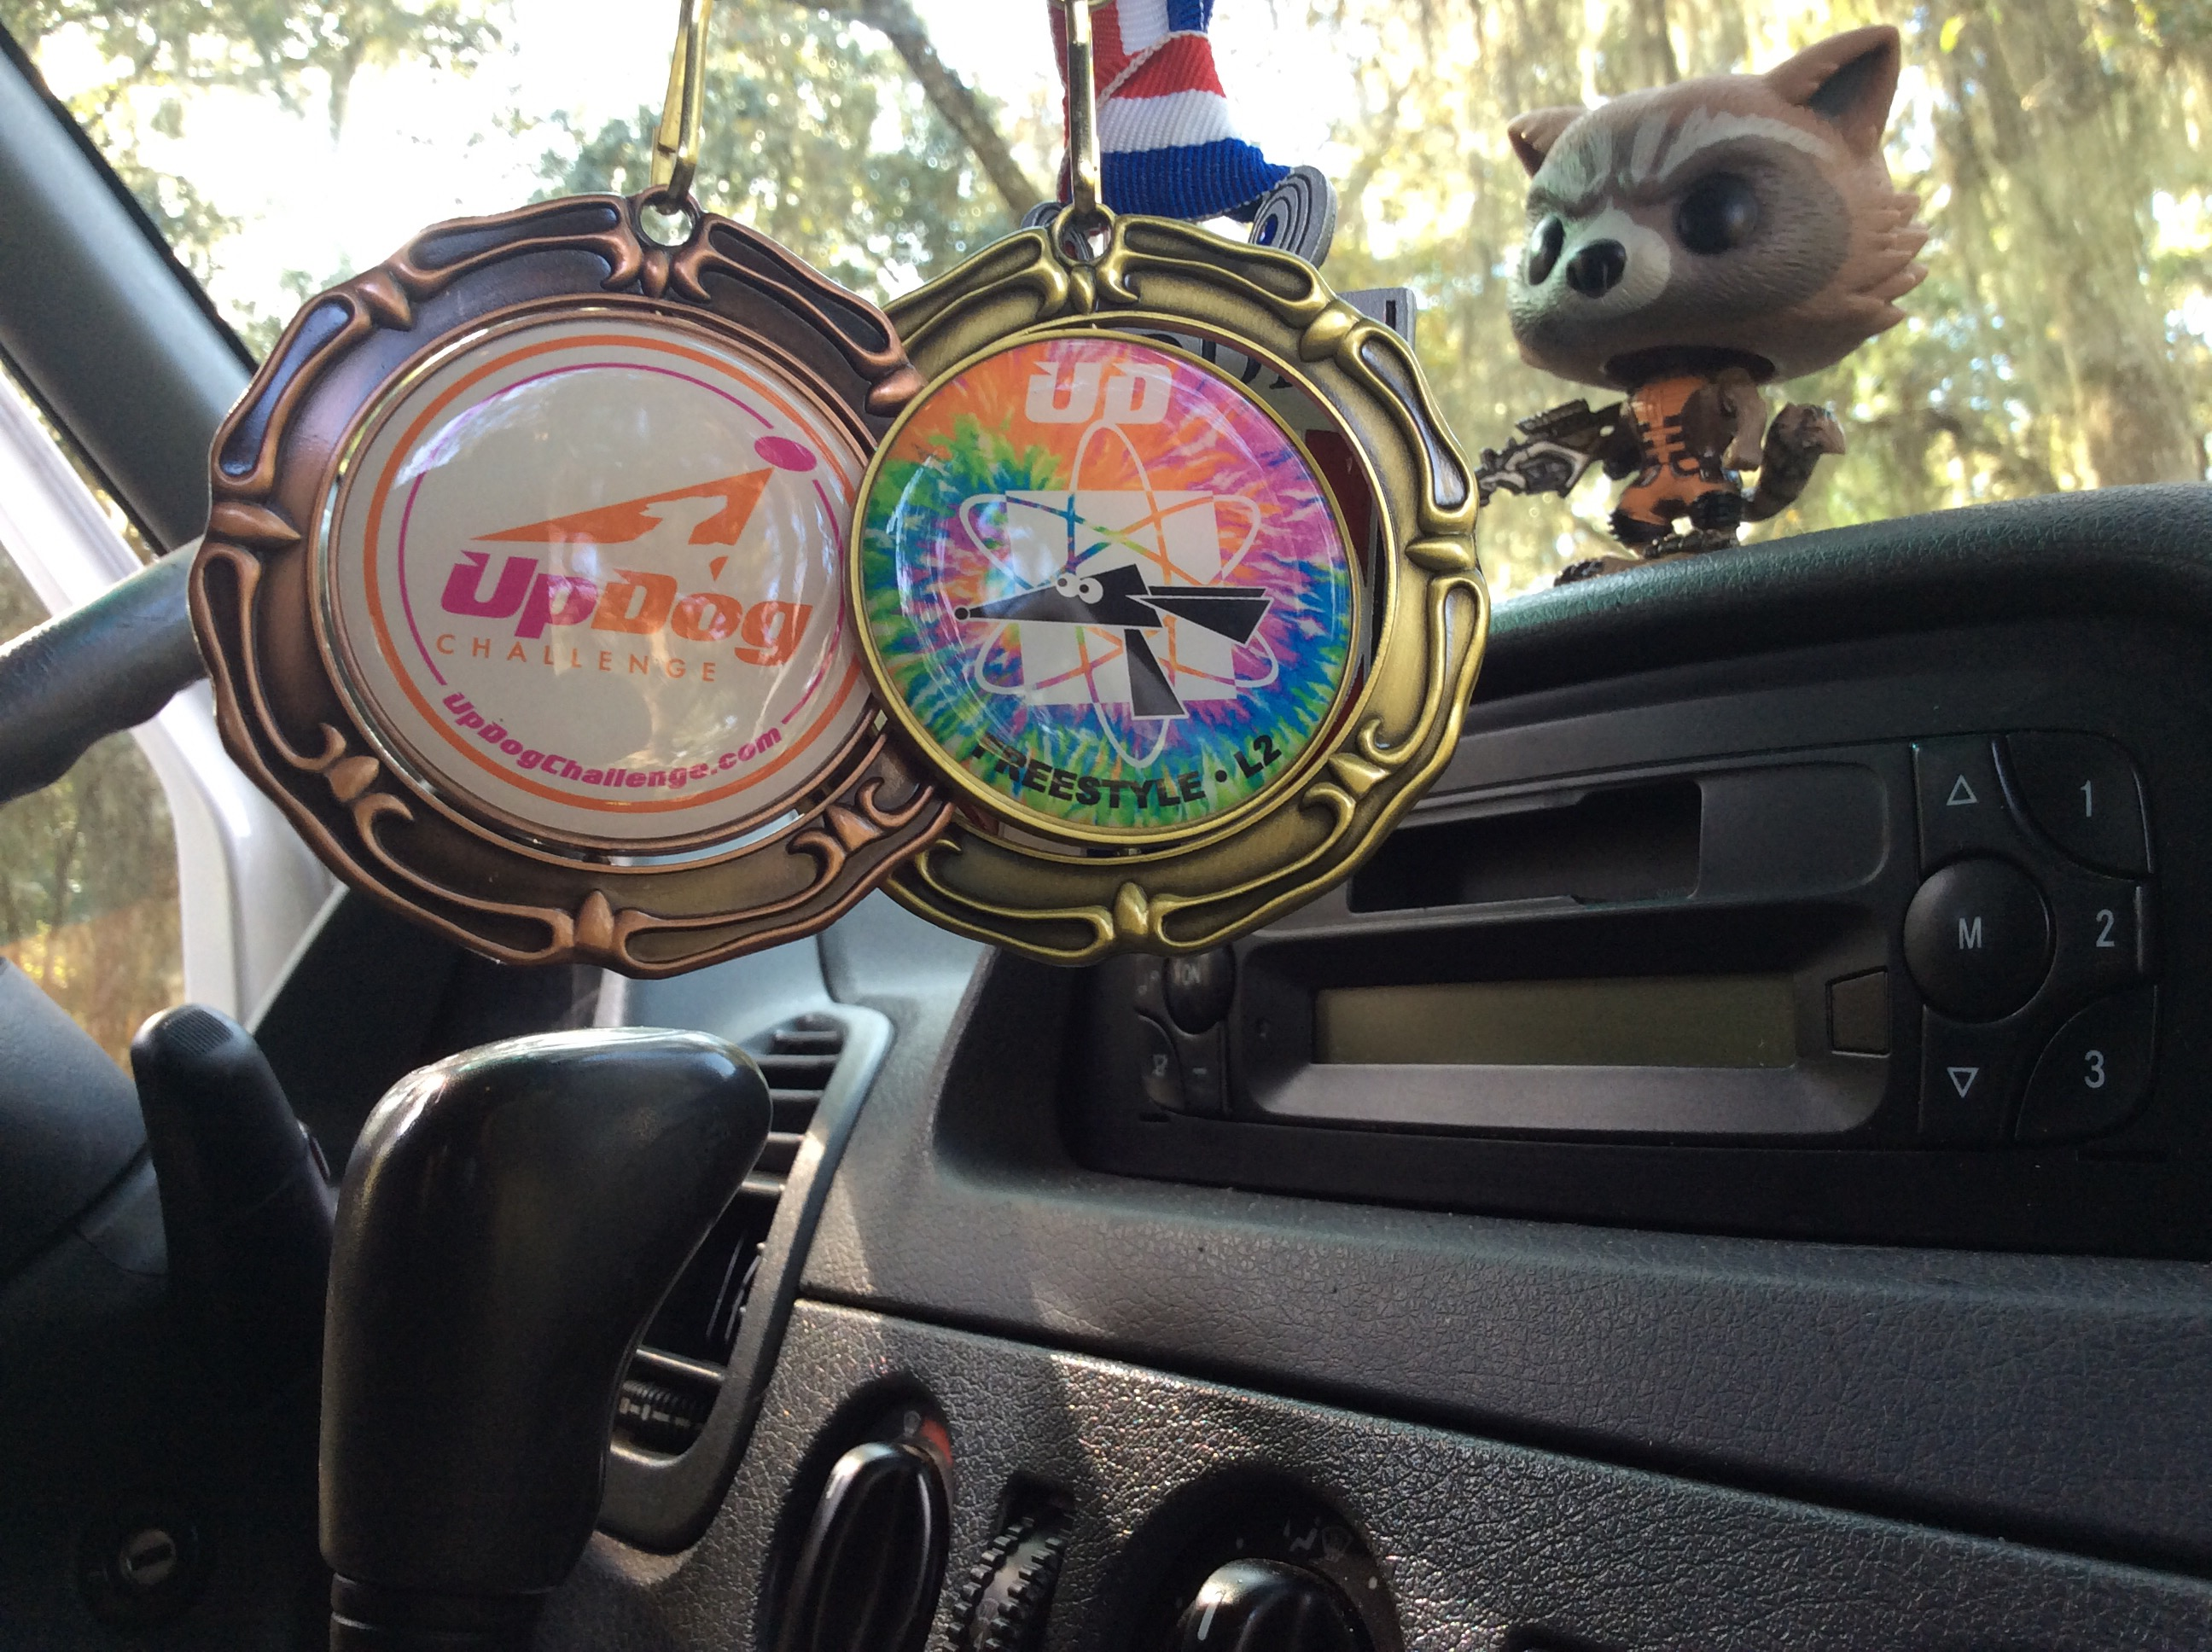 UpDog Freestyle Level 2 Medals